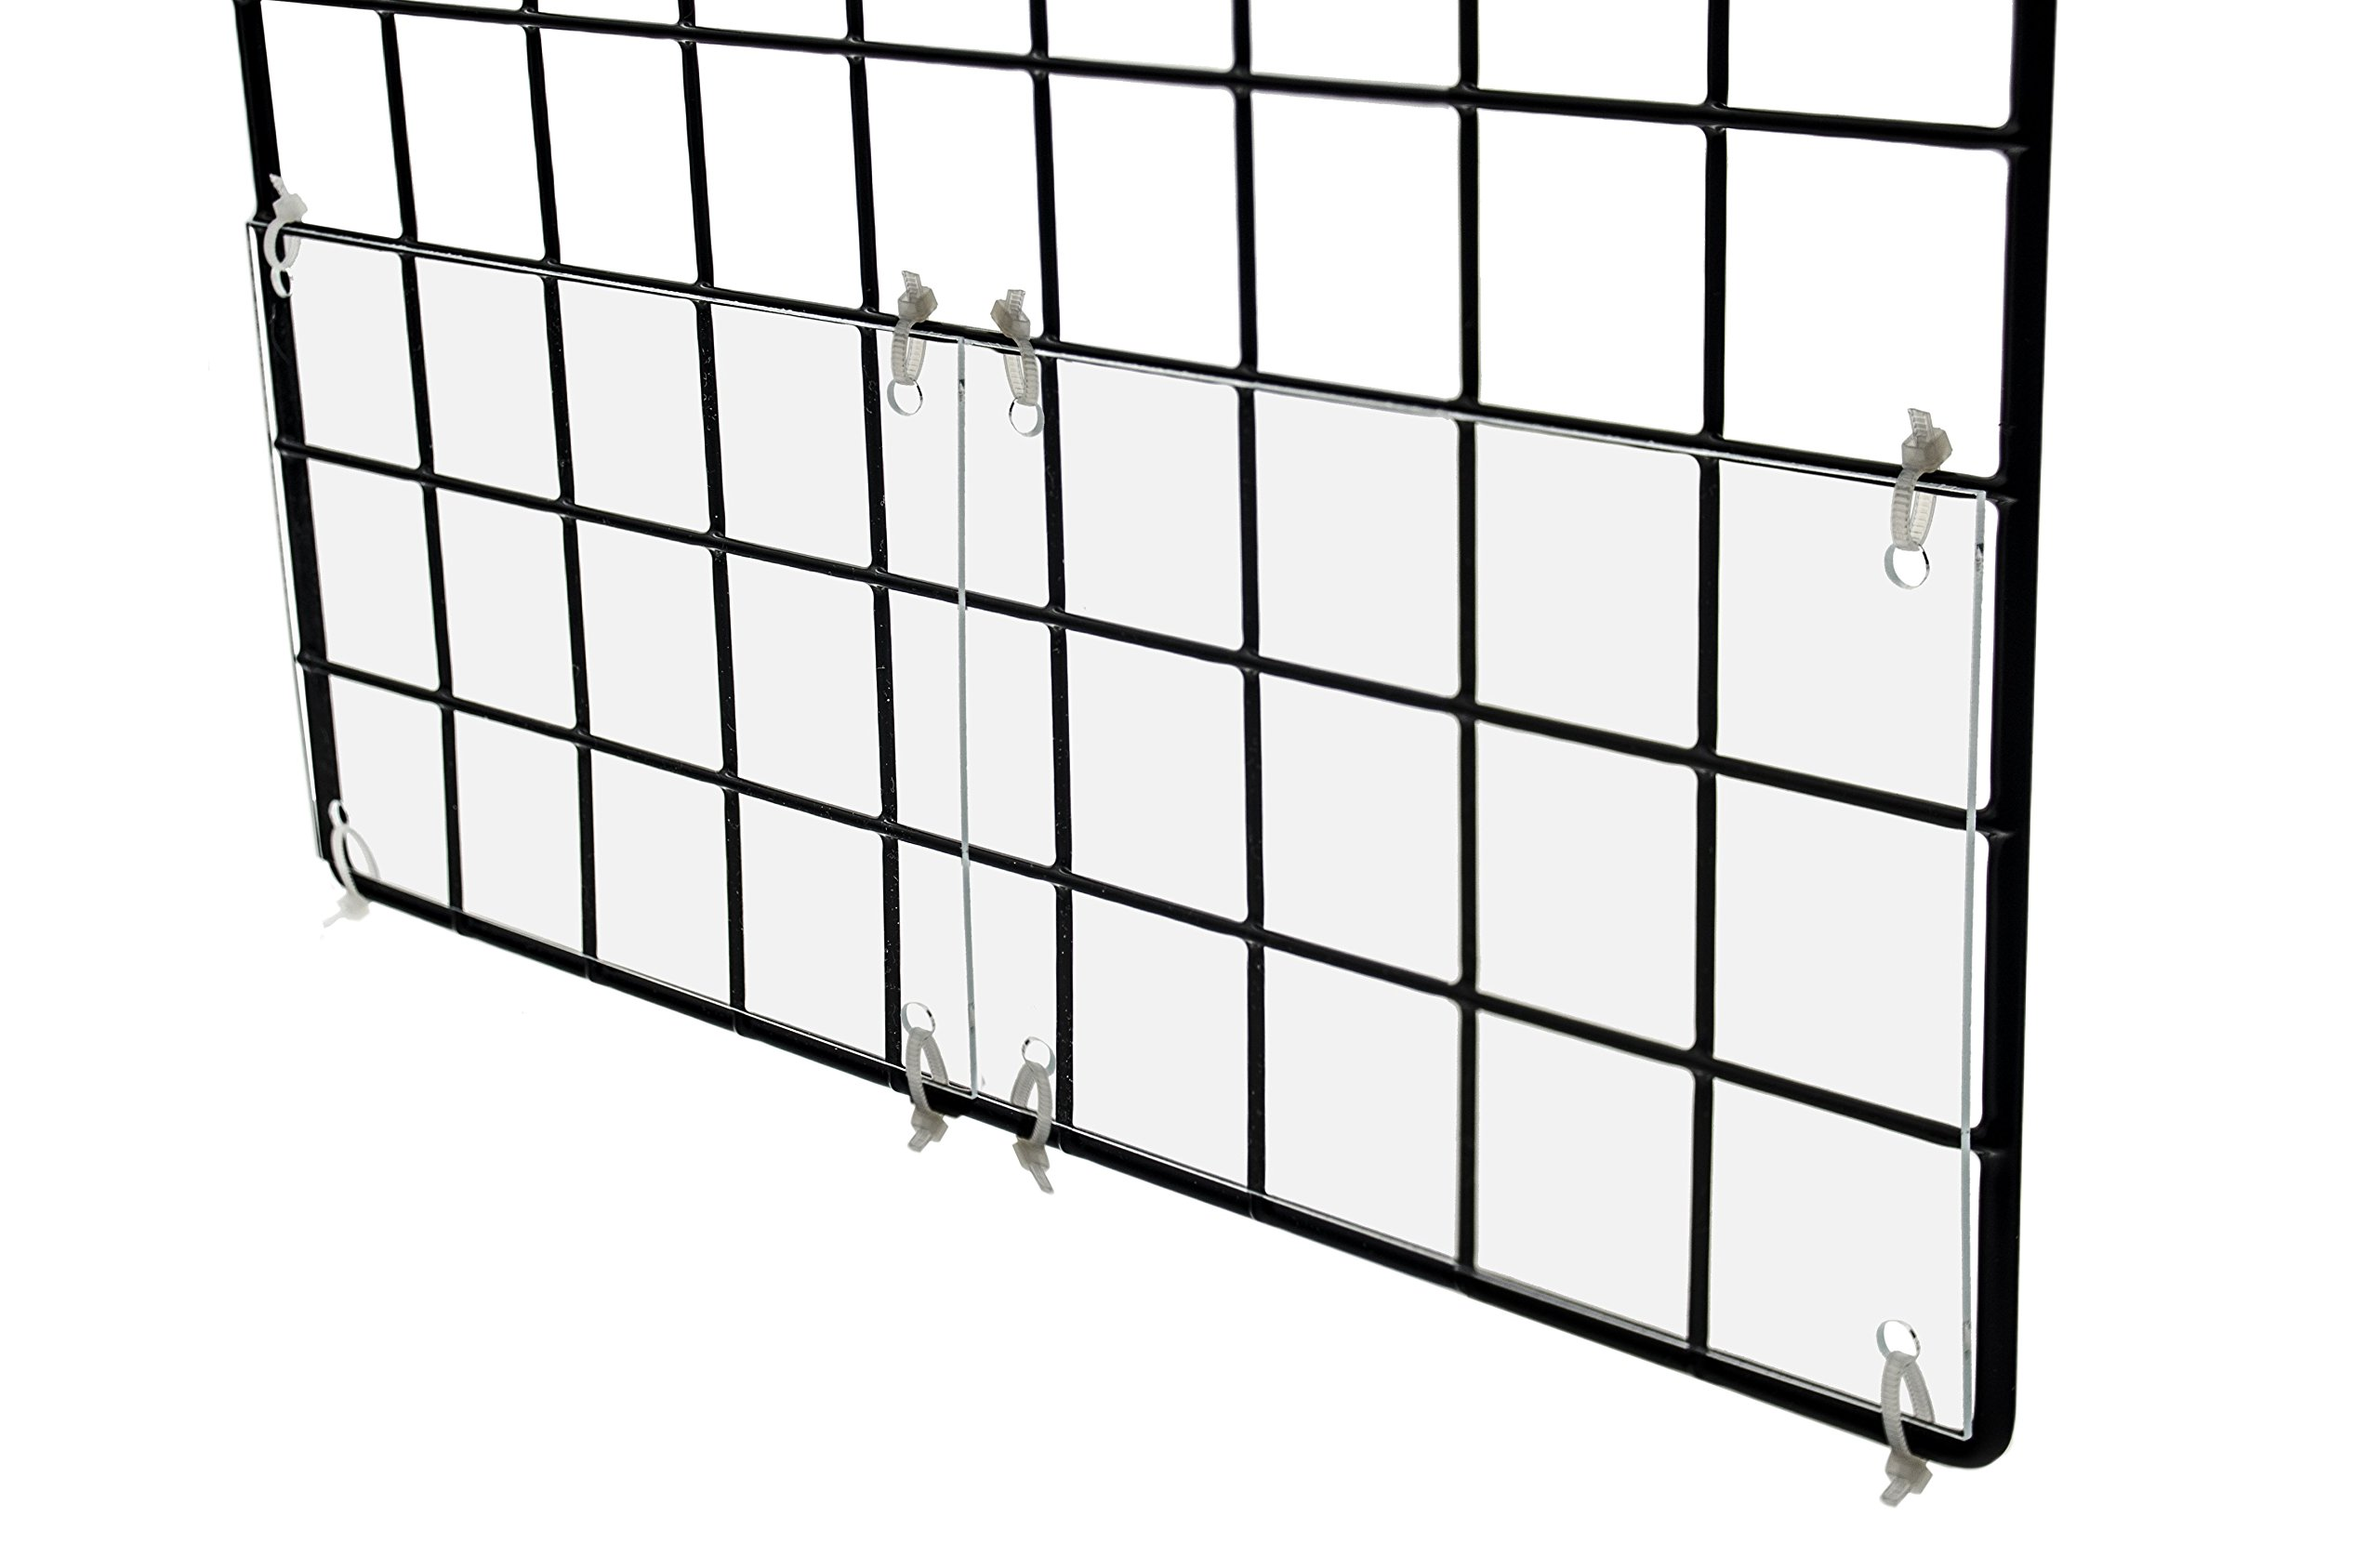 Marketing Holders Clear Acrylic Edge Liner Pet Rabbit & Guinea Pig Cage Urine Guard Side Lining 6''W x 4 1/2''H Pack of 4